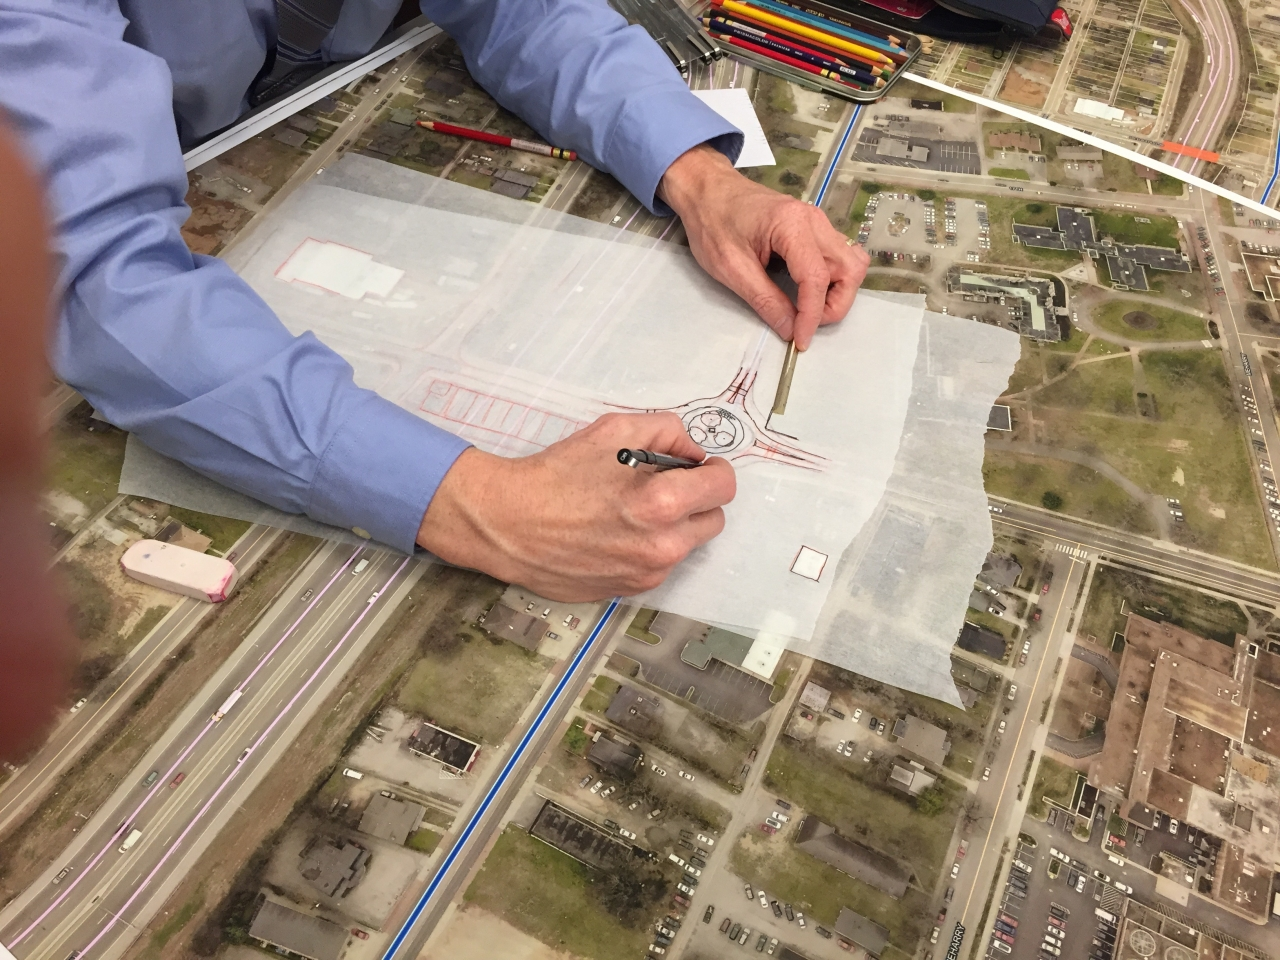 A man drafting a redesign of streets in Nashville